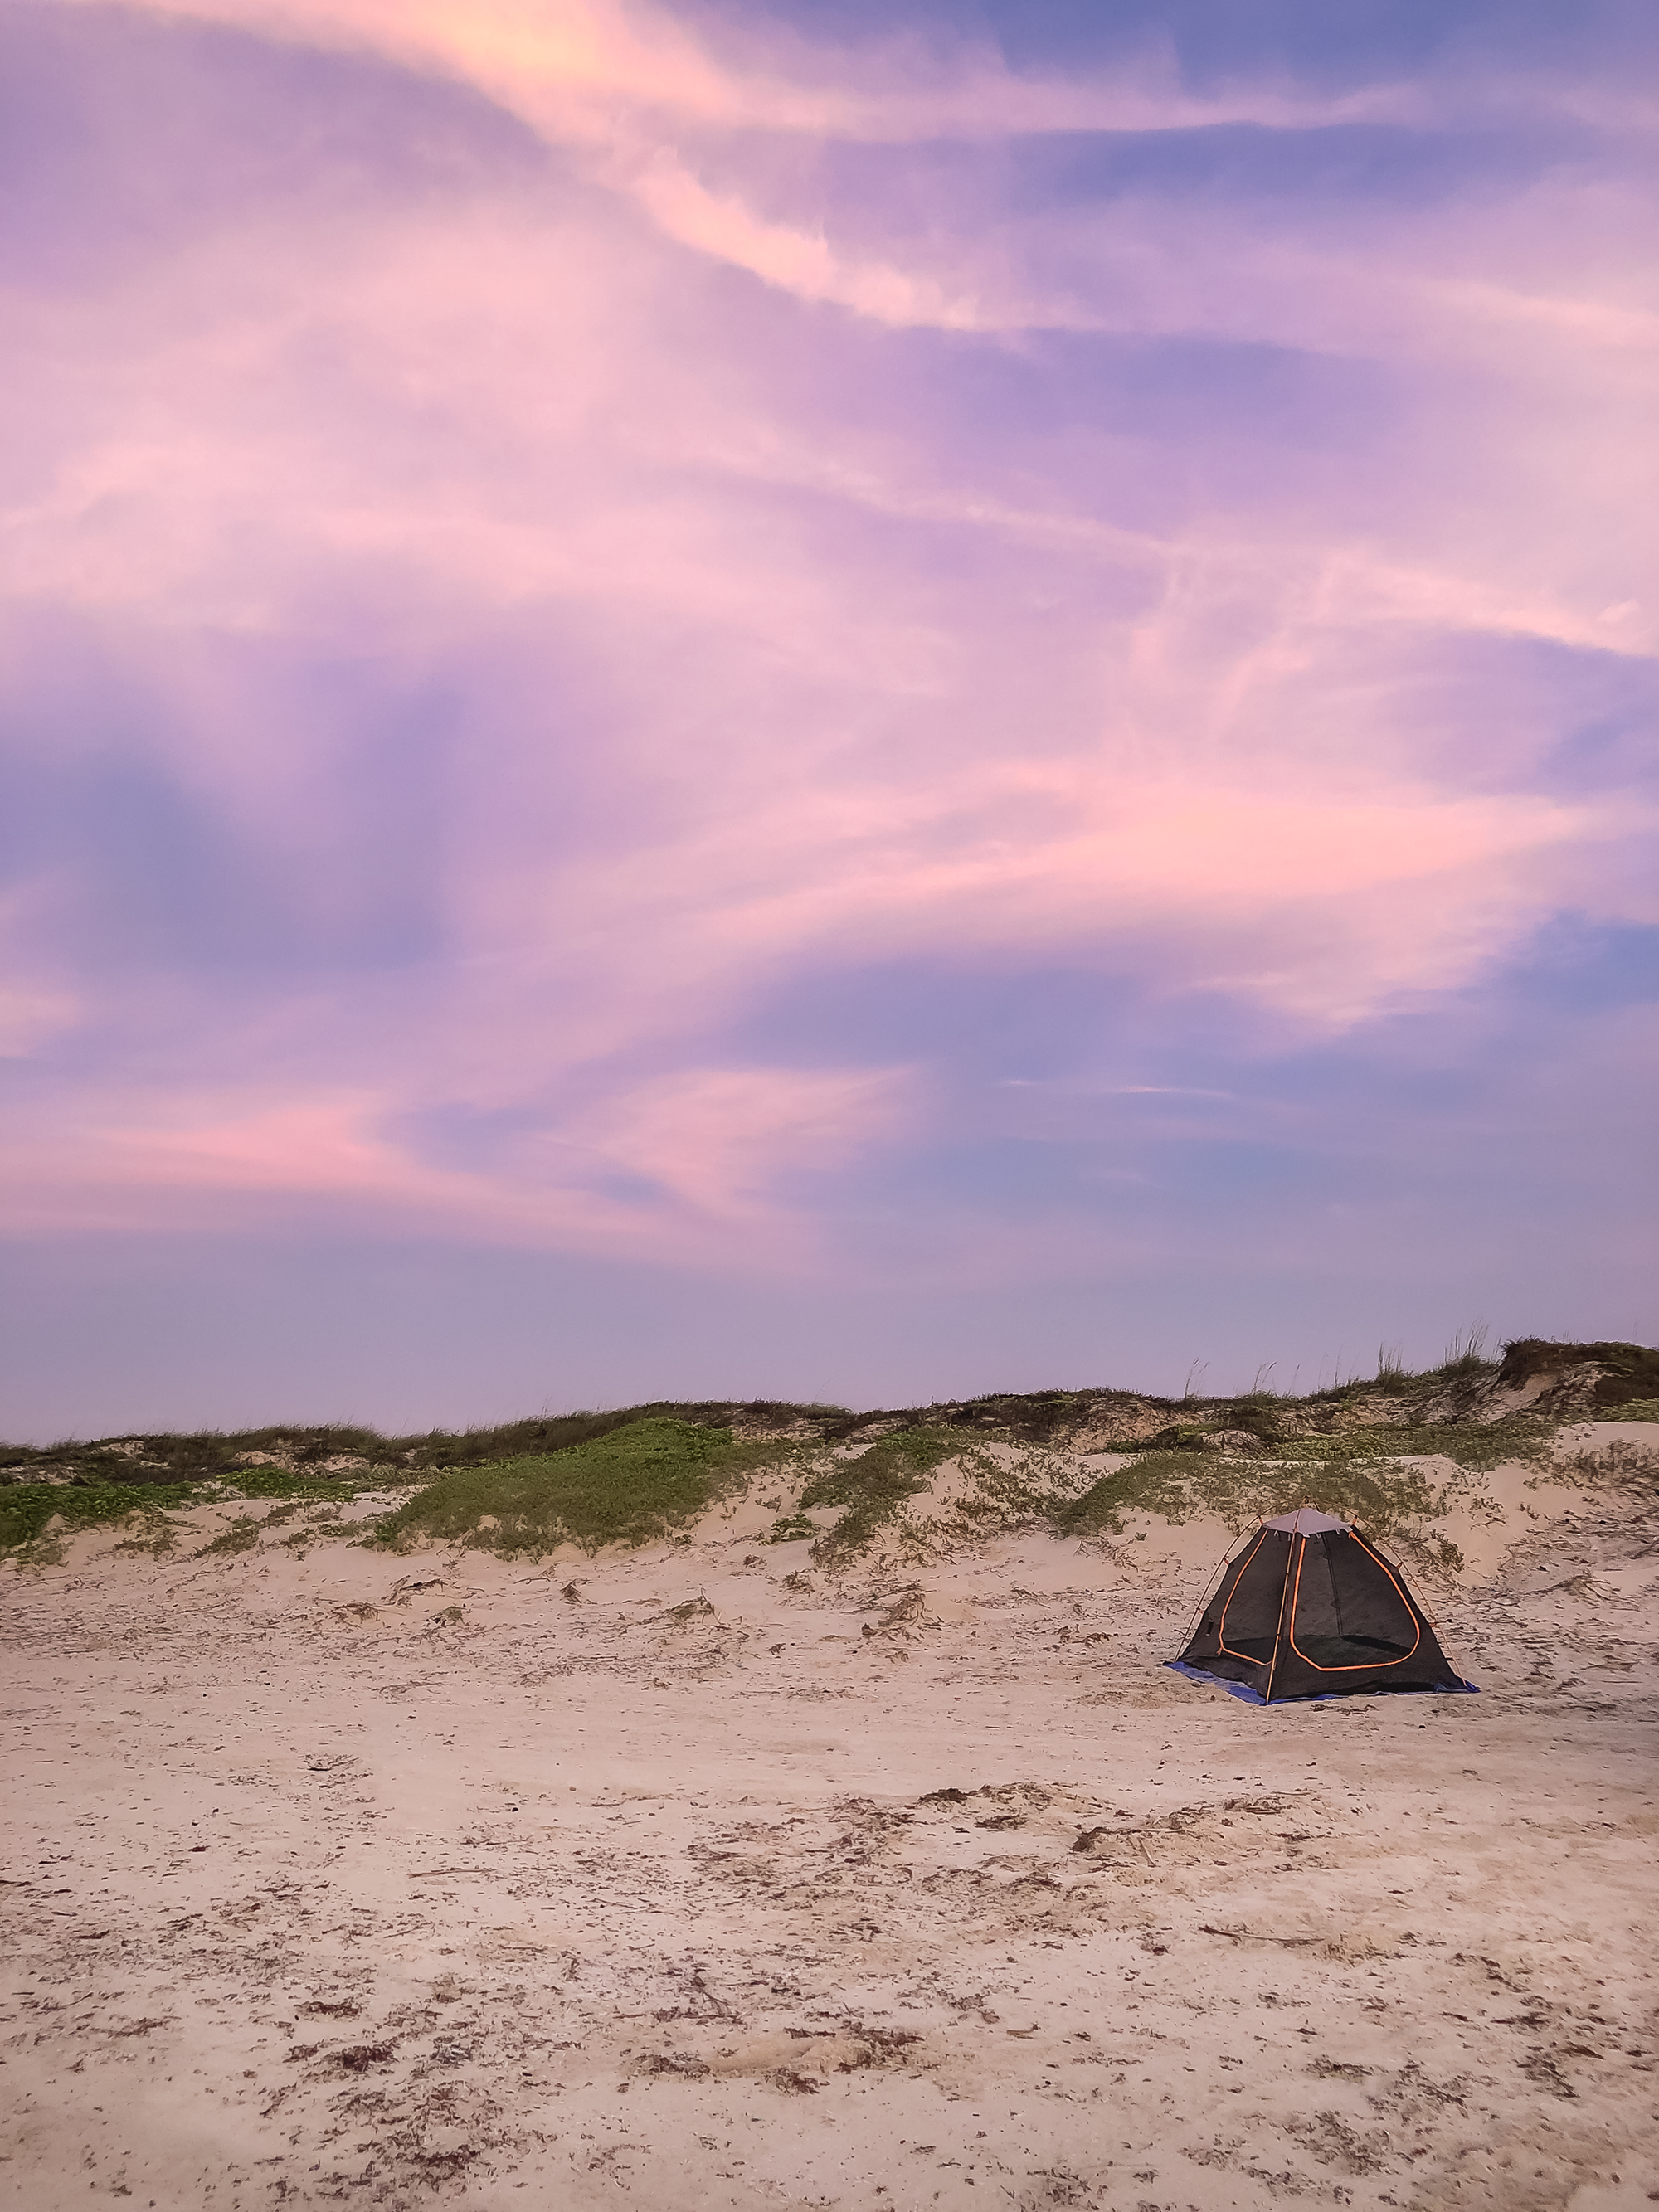 My little campsite. | Padre Island National Seashore, Texas | June 2018